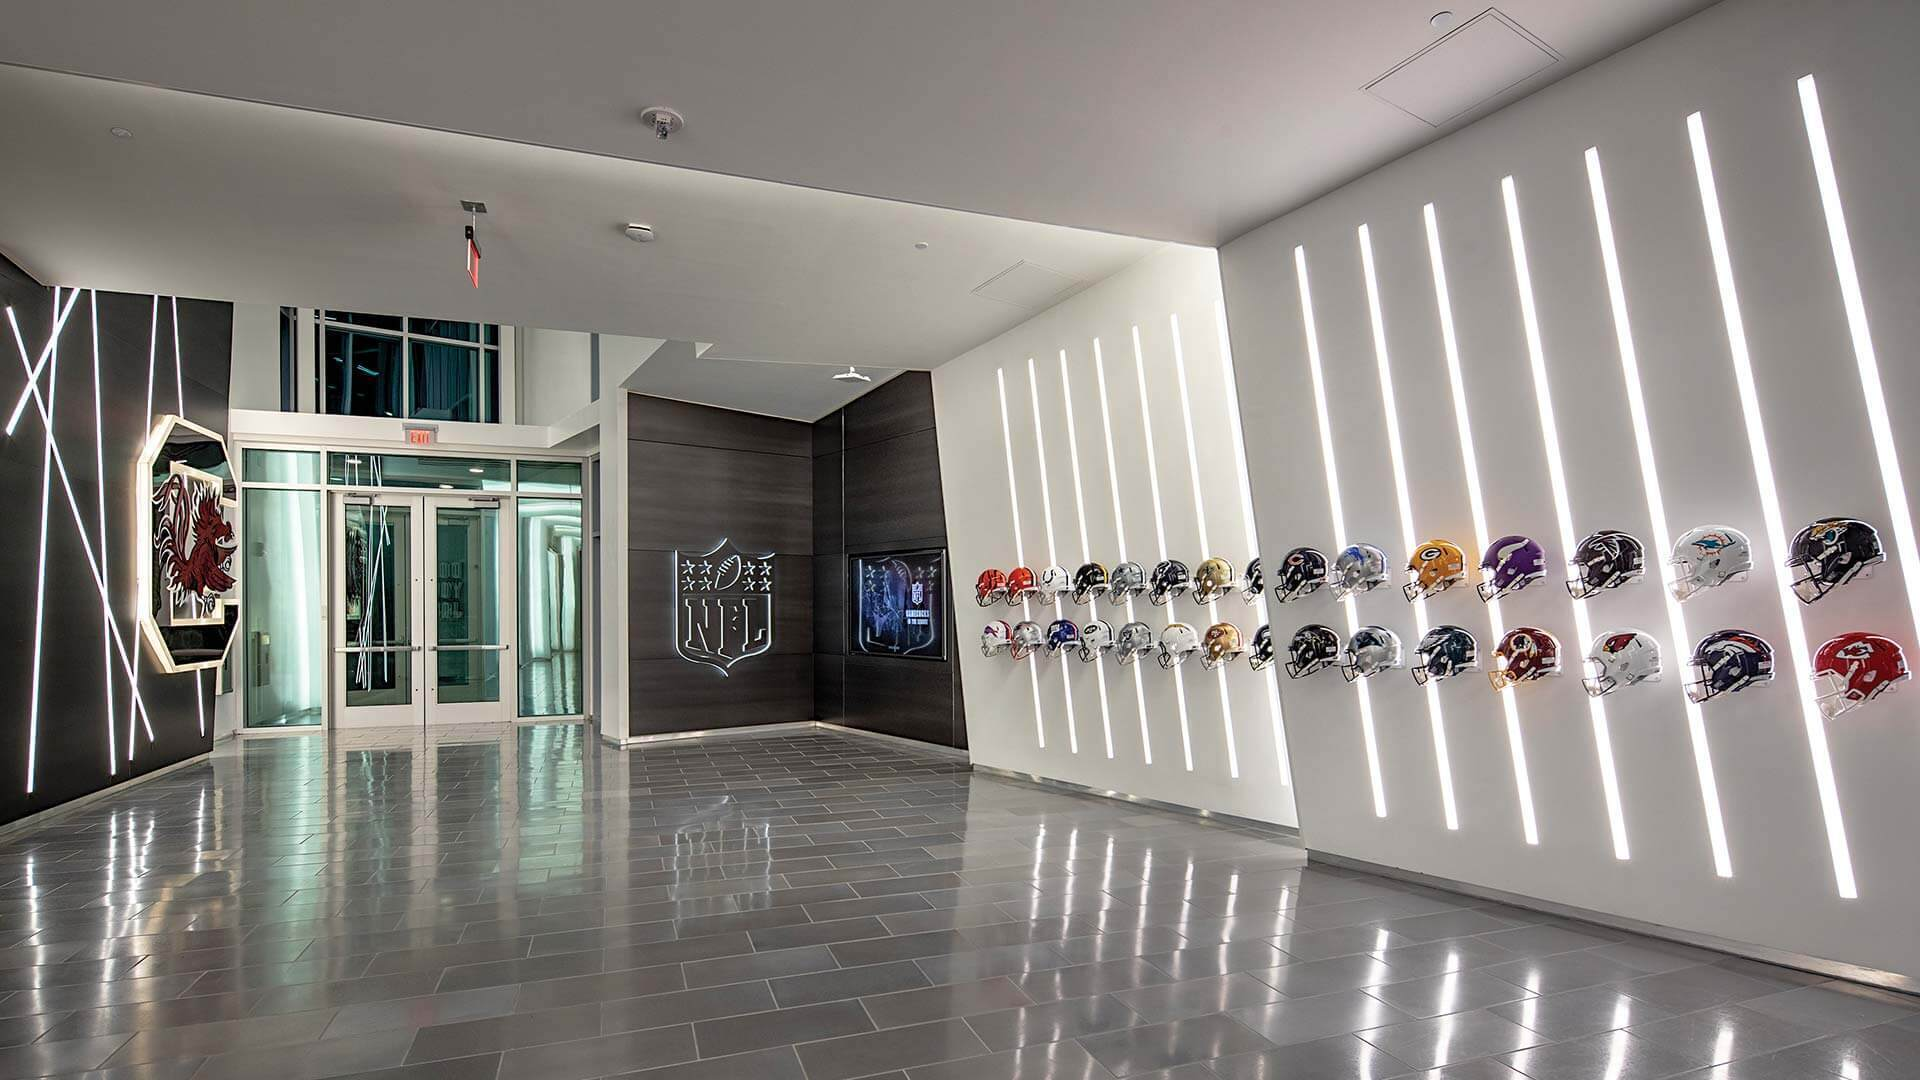 The University of South Carolina Long Family Football Operations Center is located in Columbia, SC featuring lighting products by Acuity Brands - Mark Architectural Lighting™. Project in collaboration with Quackenbush Architects + Planners and Acuity Brands agent JG Murphy.   Photographer: Christy Radecic